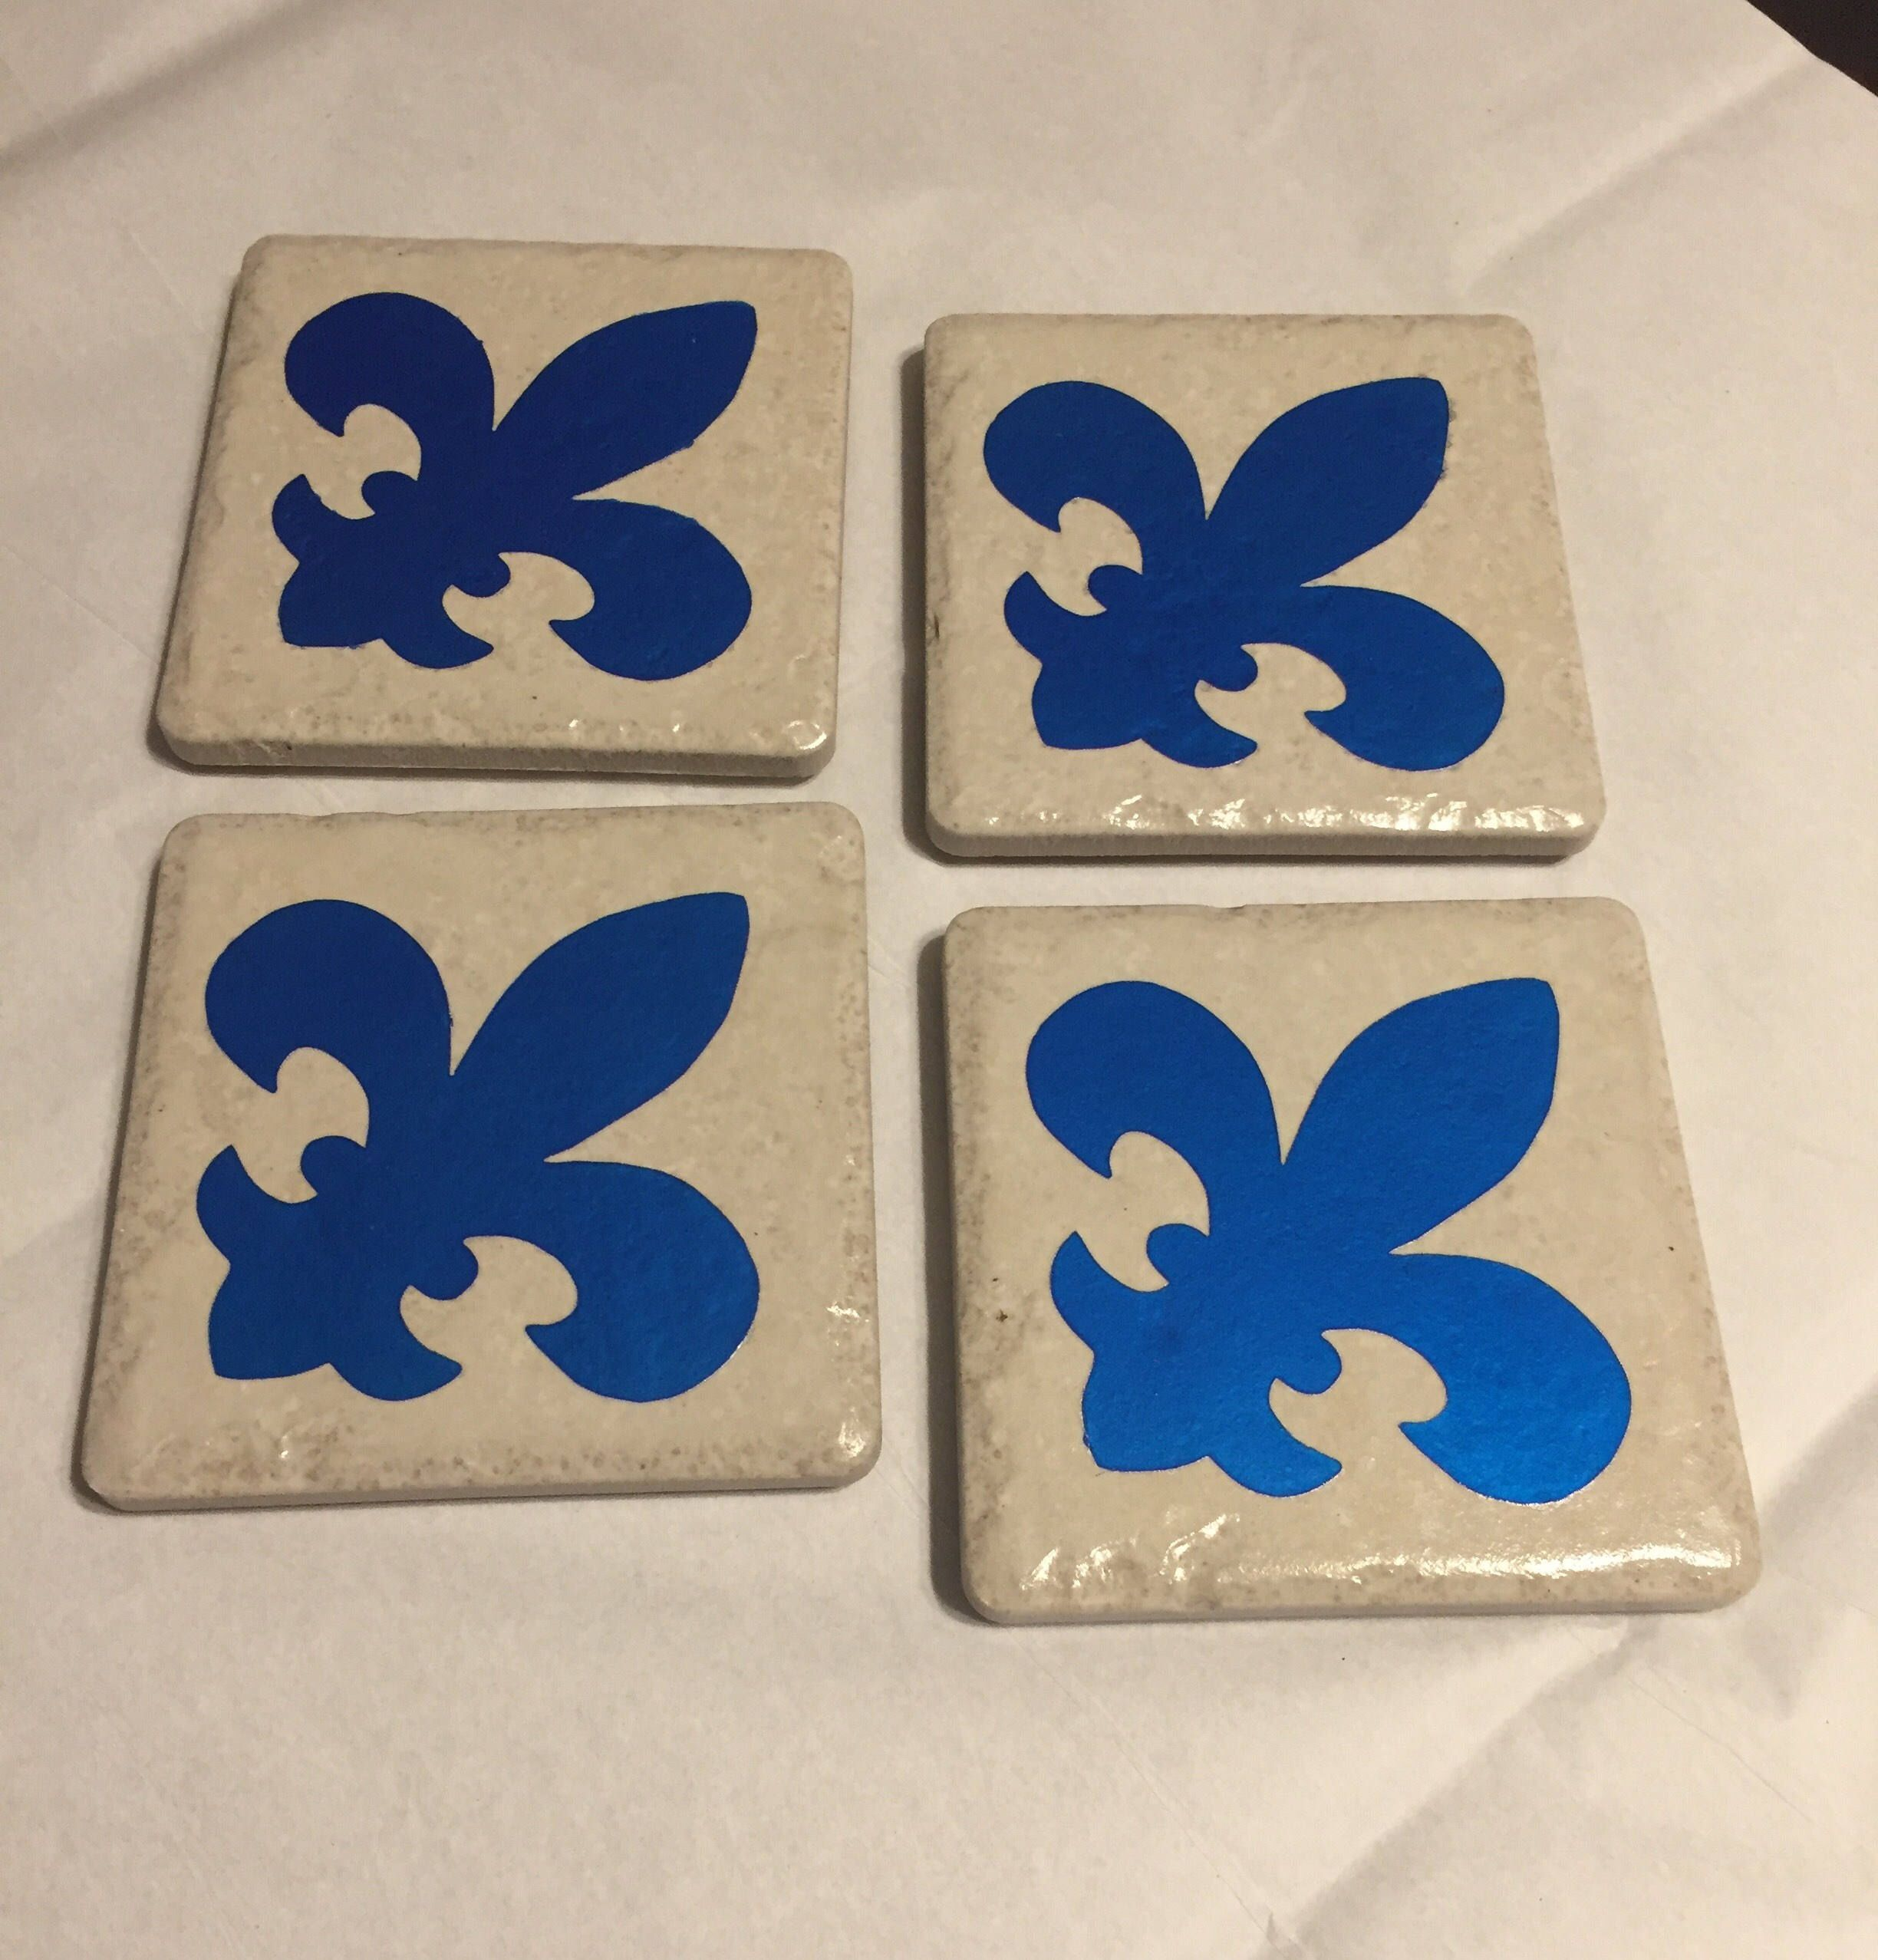 Blue Fleur De Lis Decorative Tile Coasters Set Of 4 Etsy Fleurdelisdecor